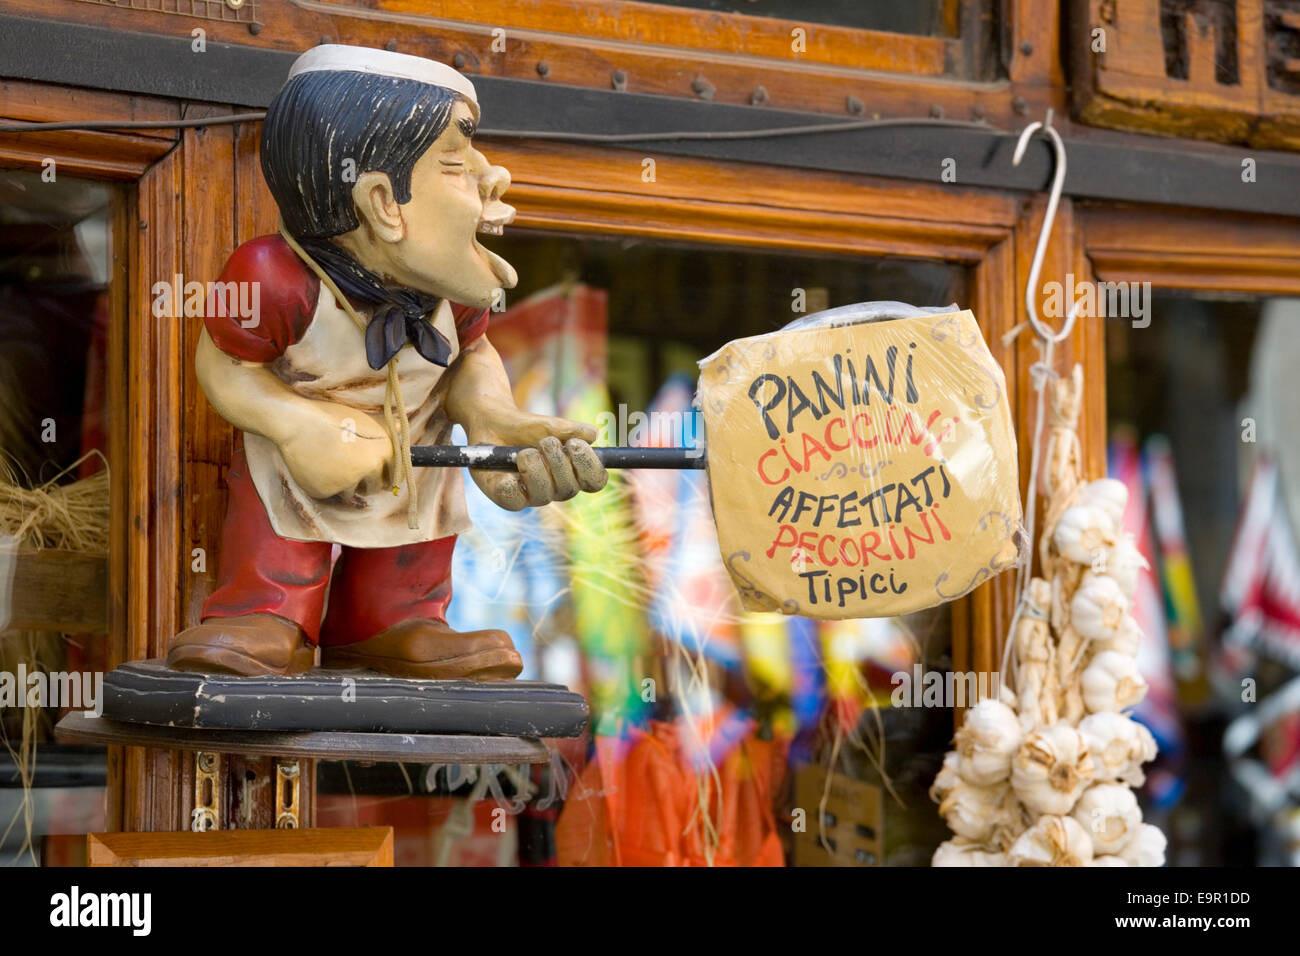 Siena, Tuscany, Italy. Amusing sign outside corner shop in Via Tito Sarrocchi selling traditional food products. Stock Photo